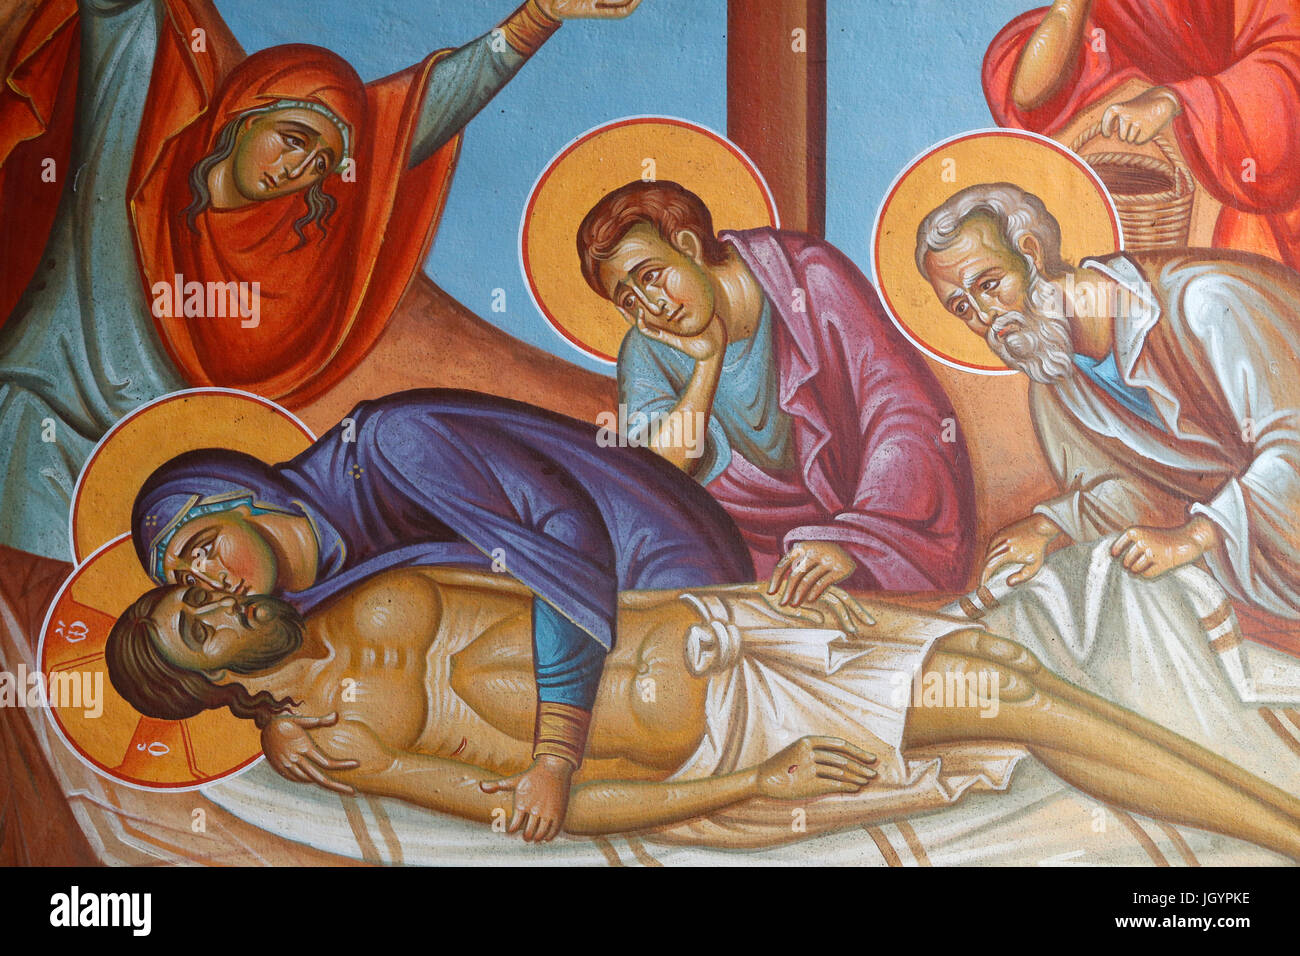 Fresco in Holy cross church, Pedoulas. Jesus Christ's entombment. Cyprus. Stock Photo